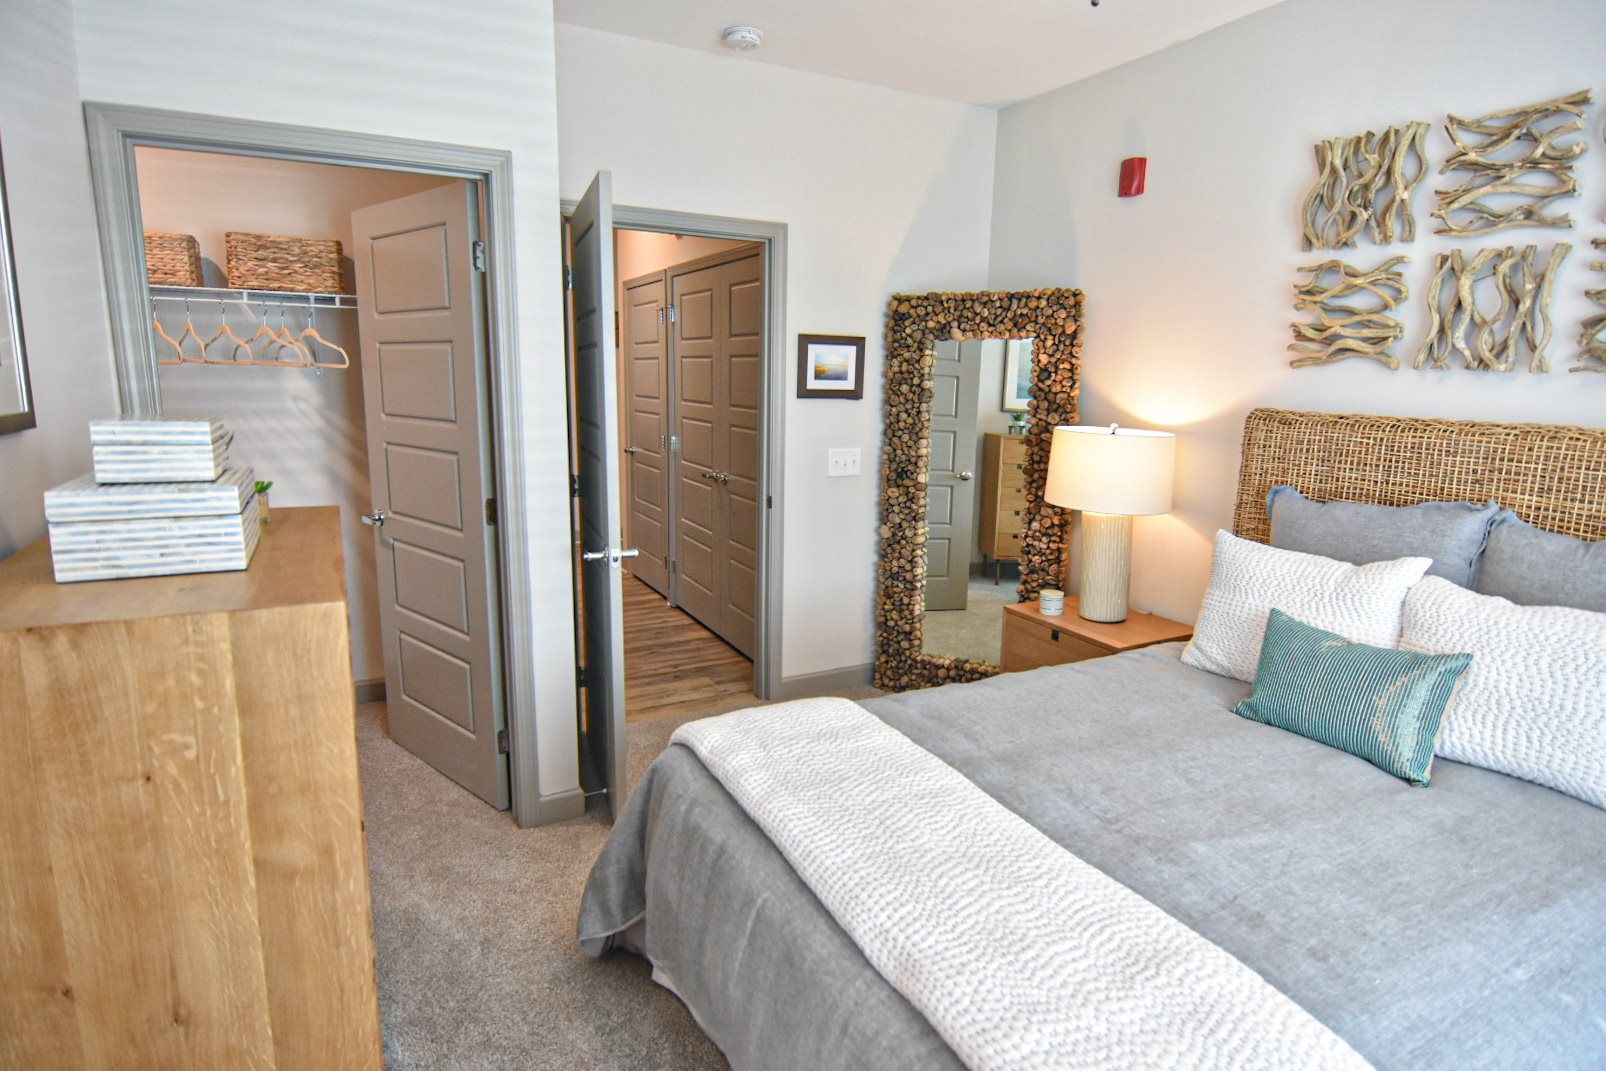 Master suite with private bathroom and walk-in closet wilmington nc